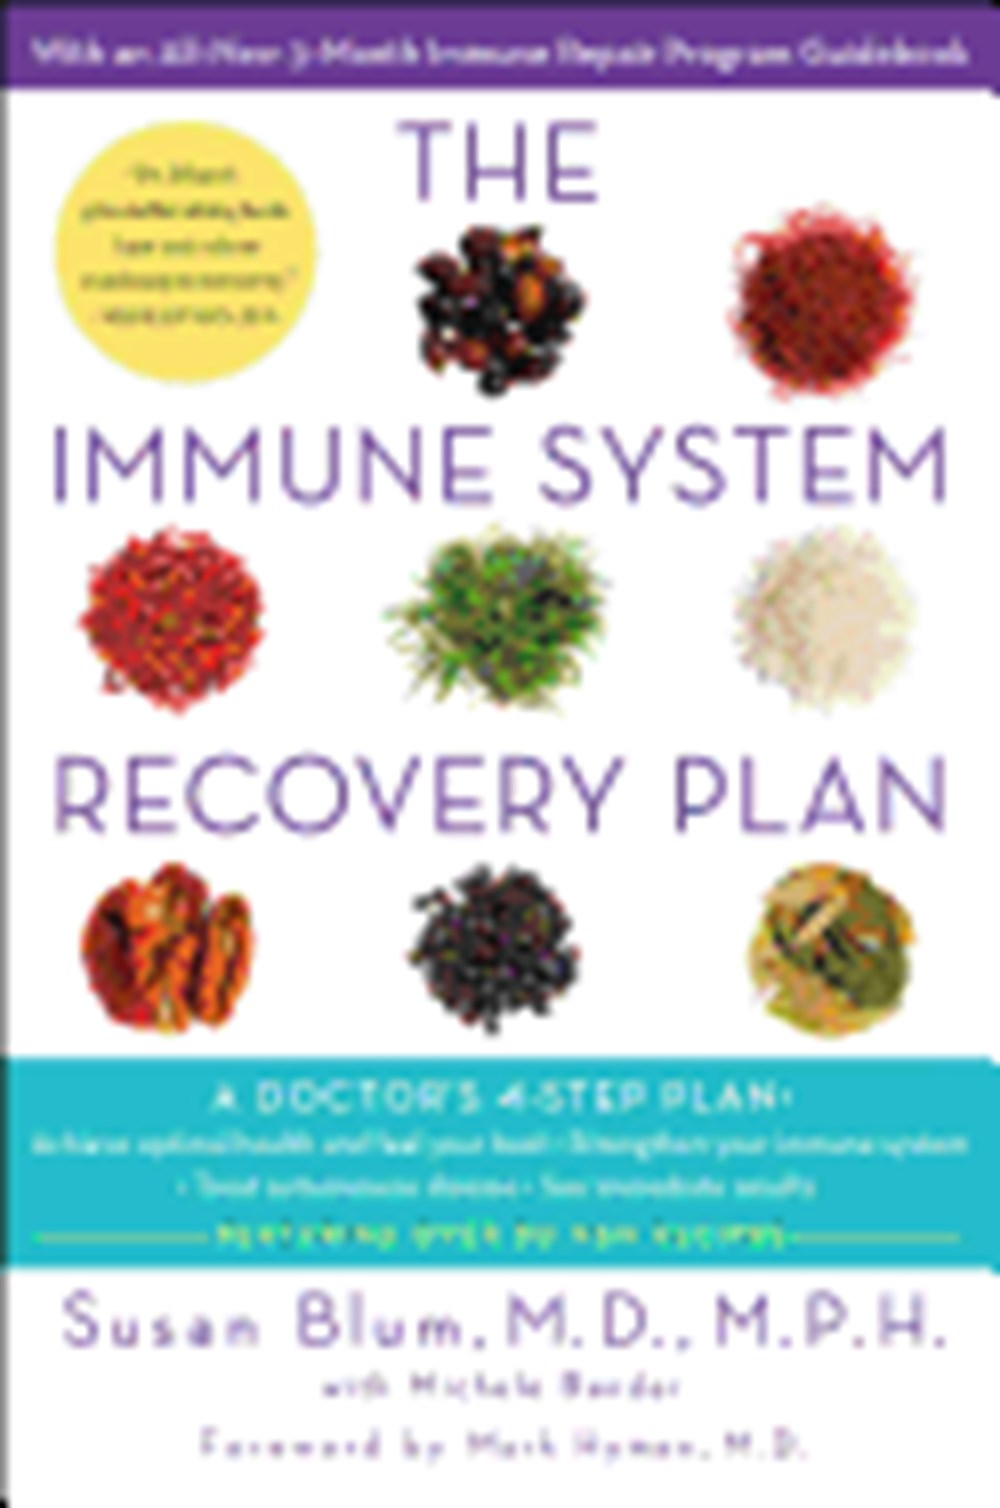 Immune System Recovery Plan A Doctor's 4-Step Program to Treat Autoimmune Disease